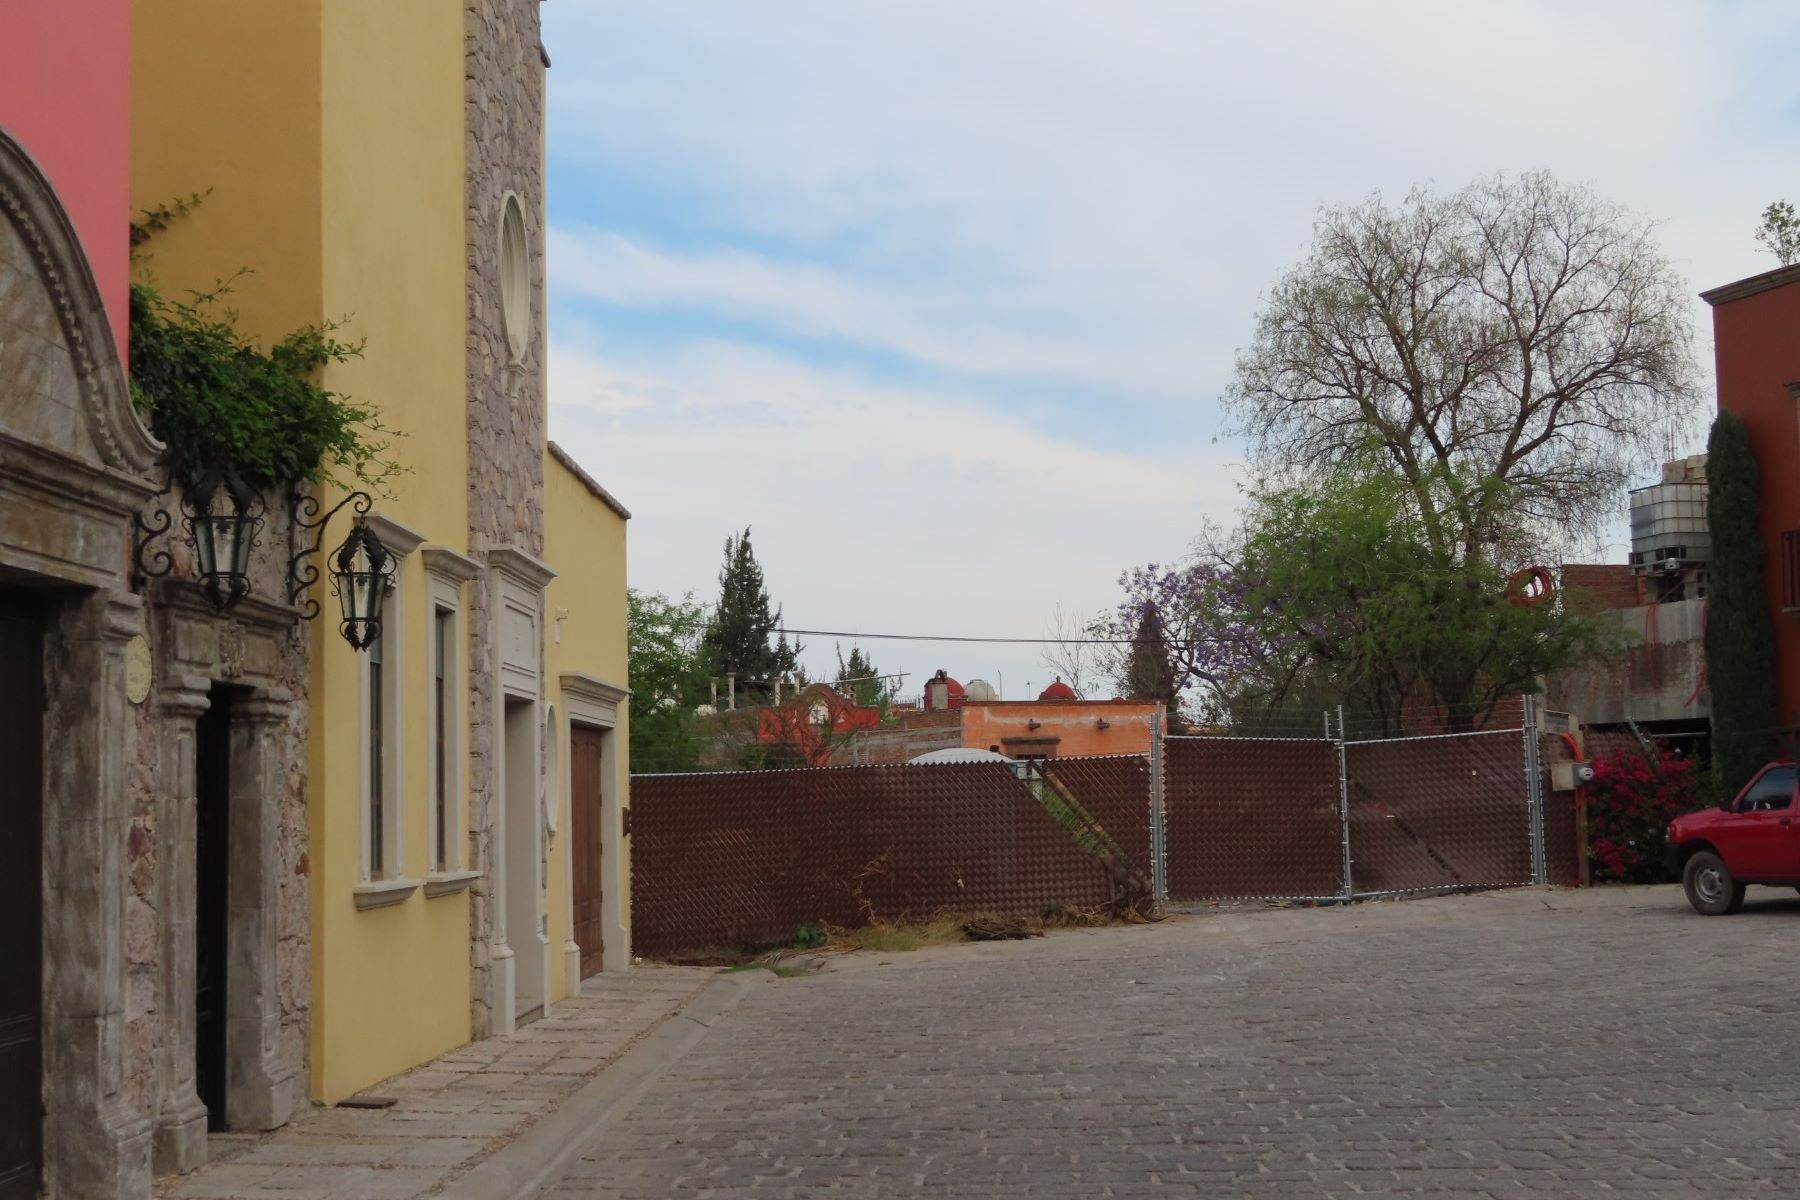 Land for Sale at Quiote Lote 6 Cerrada de Grillo - Lot 6 San Miguel De Allende, Guanajuato 37710 Mexico